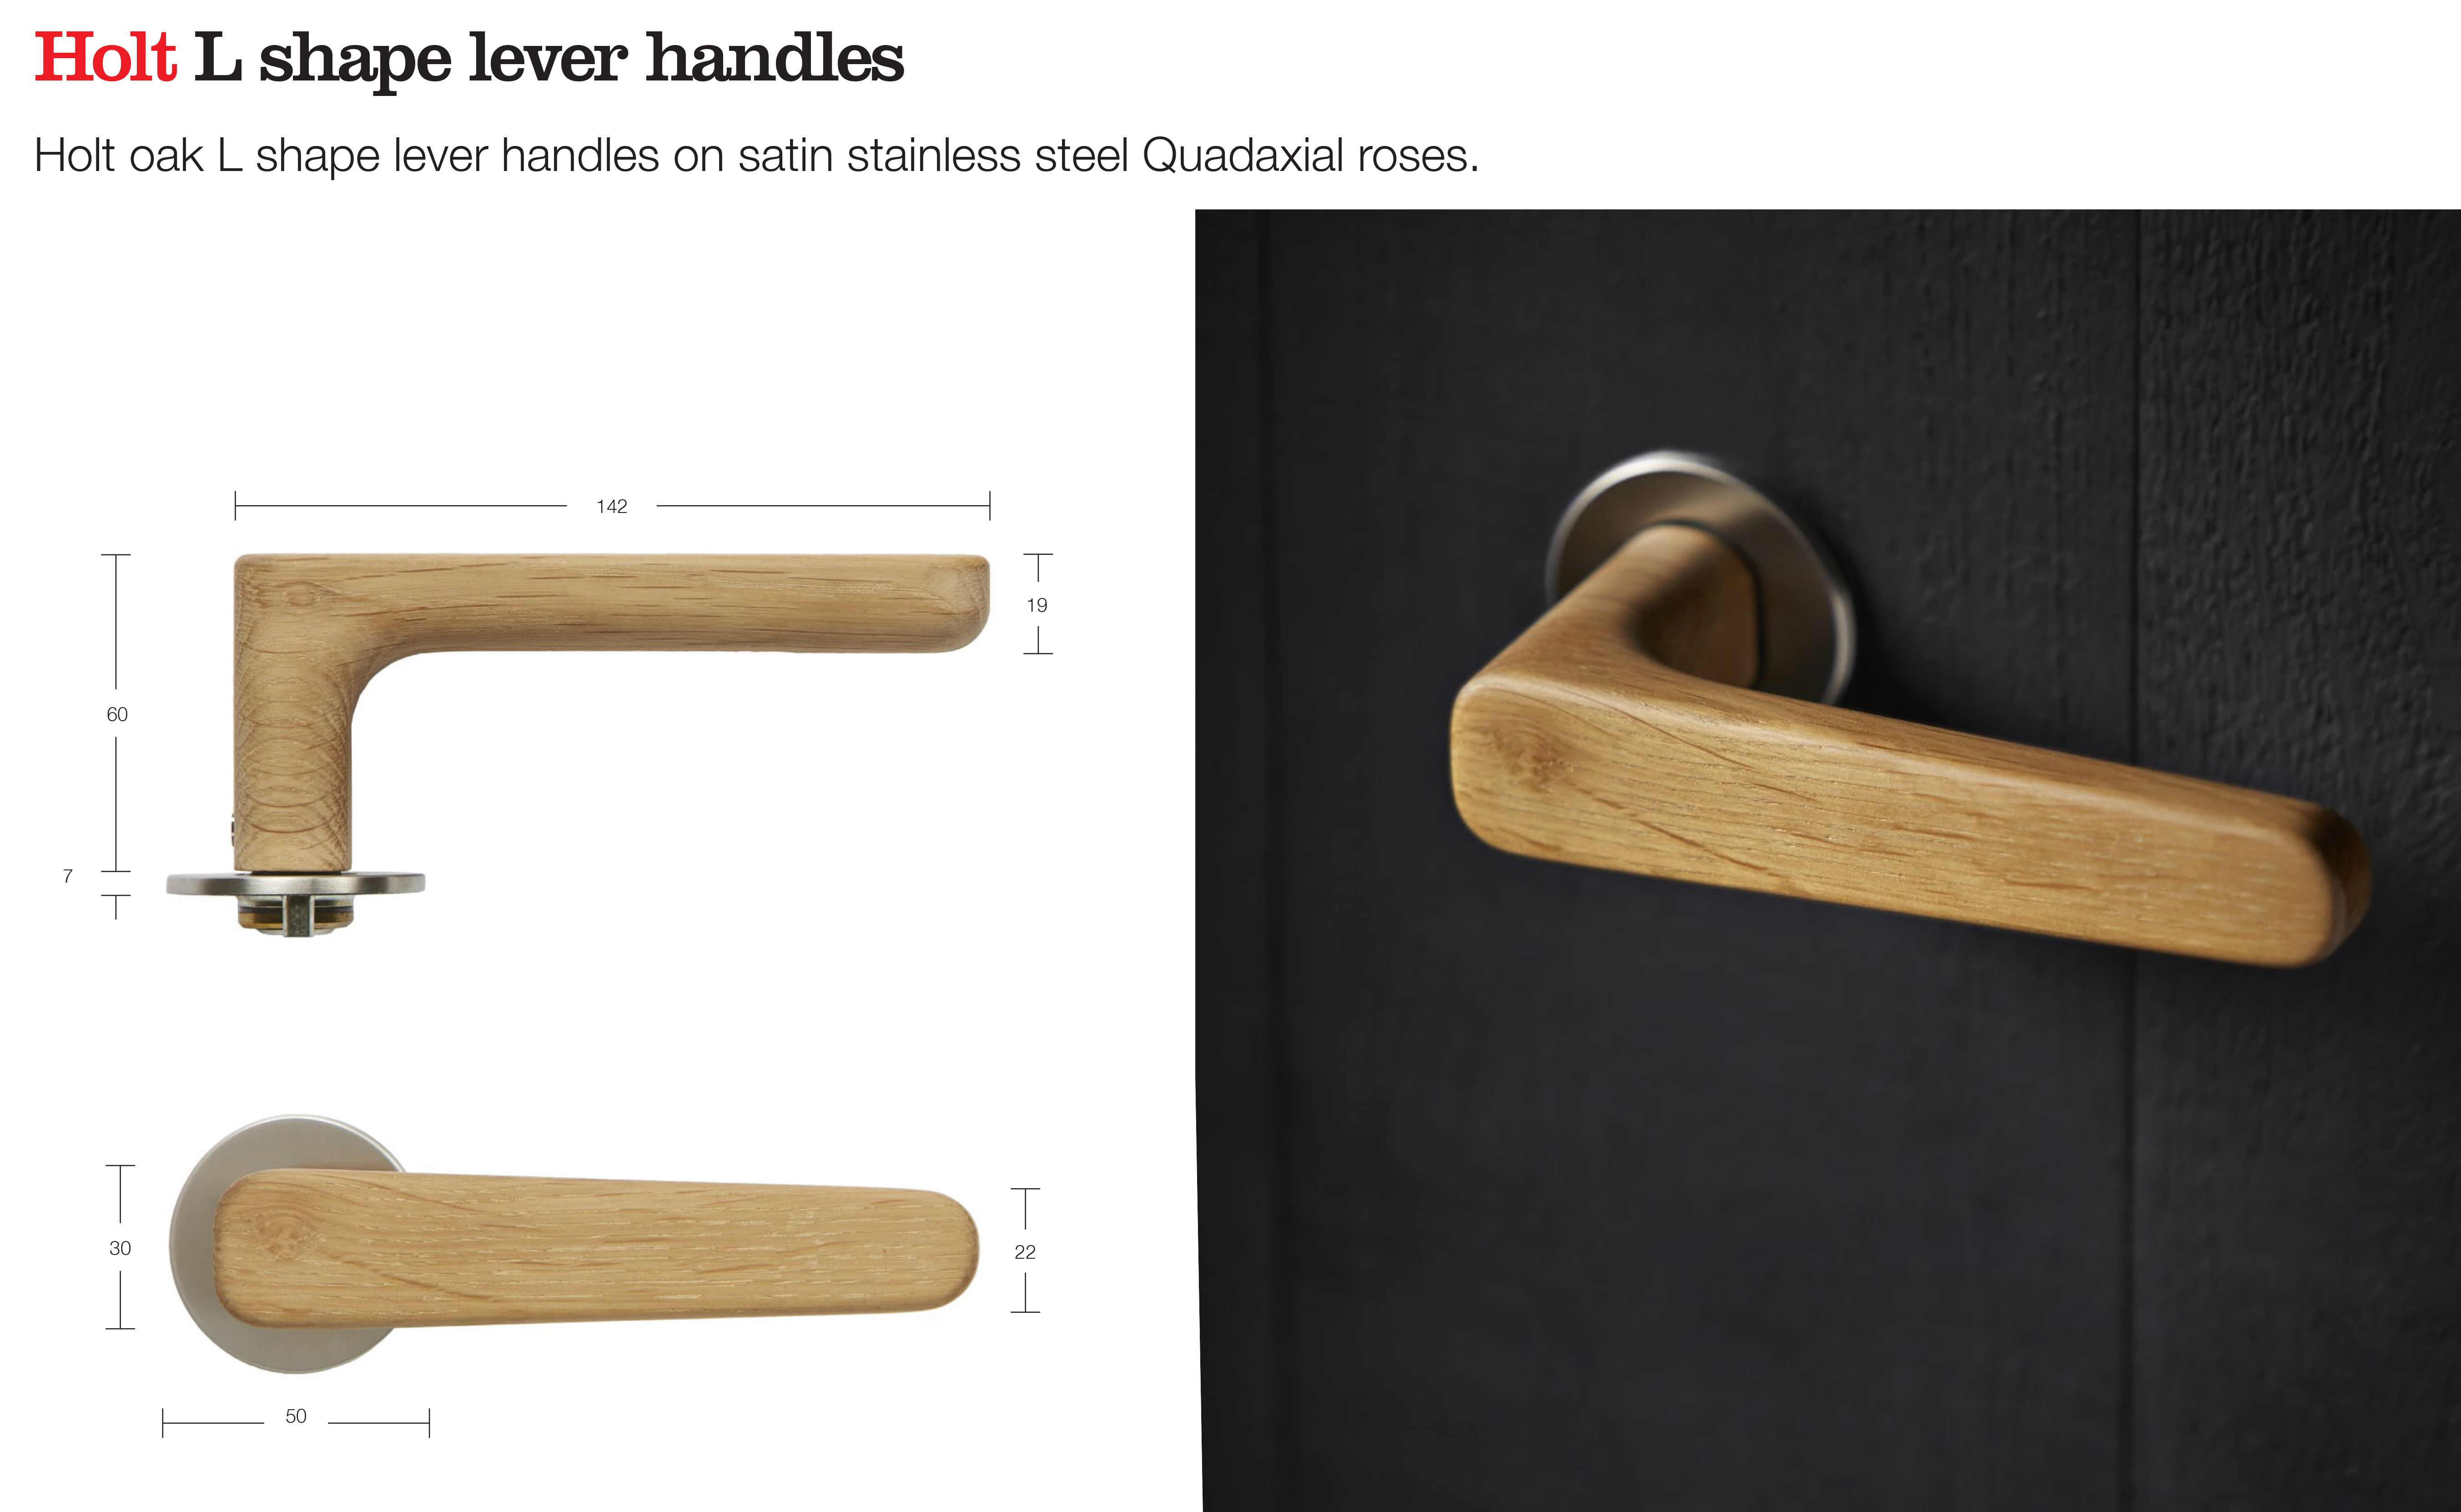 Holt Wooden Lever Handle Designed By Alex Mowat Manufactured By